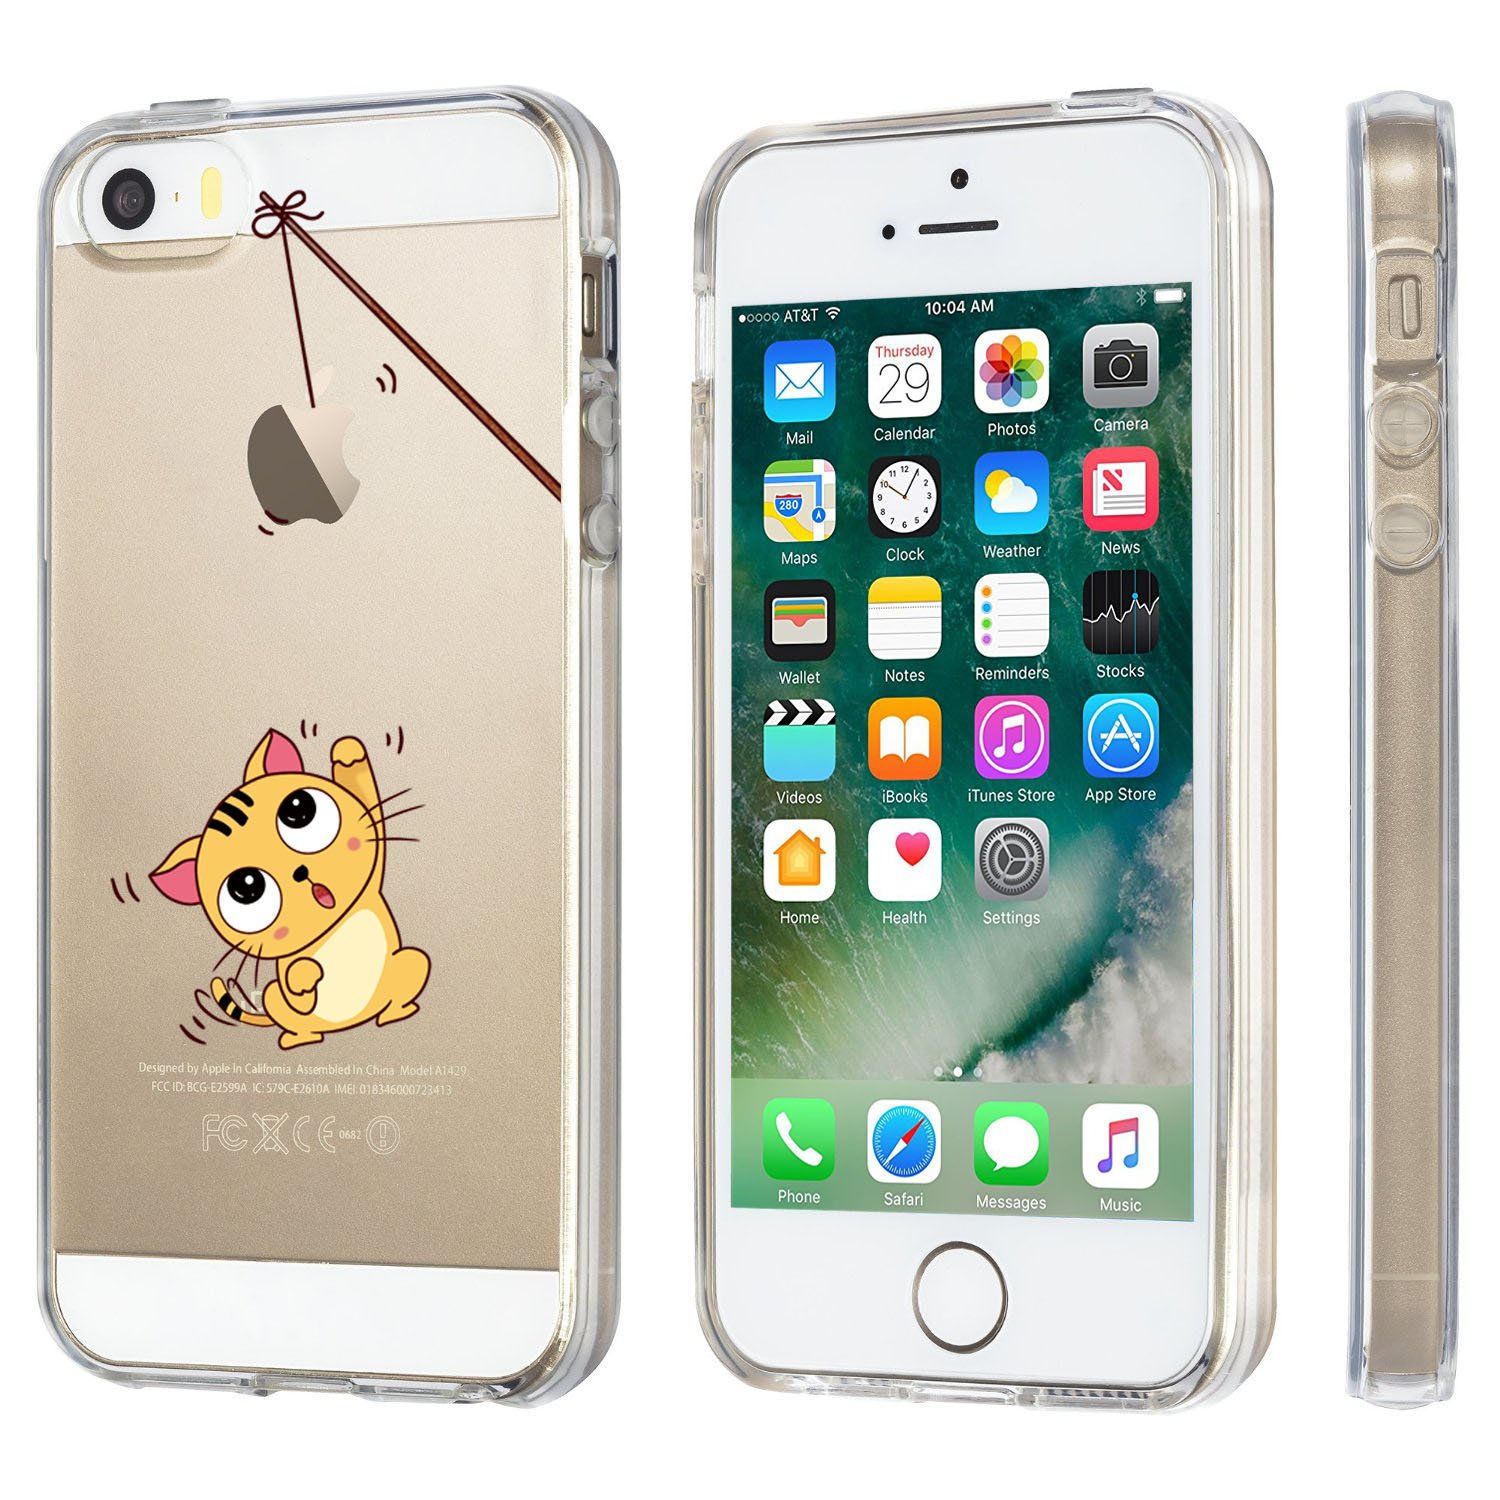 Iphone 5 5s Case Jaholan Amusing Whimsical Design Clear Hippo Tempered Glass Crystal Screen Guard 5c Bumper Tpu Soft Rubber Silicone Cover For Se Cat Fishing Cell